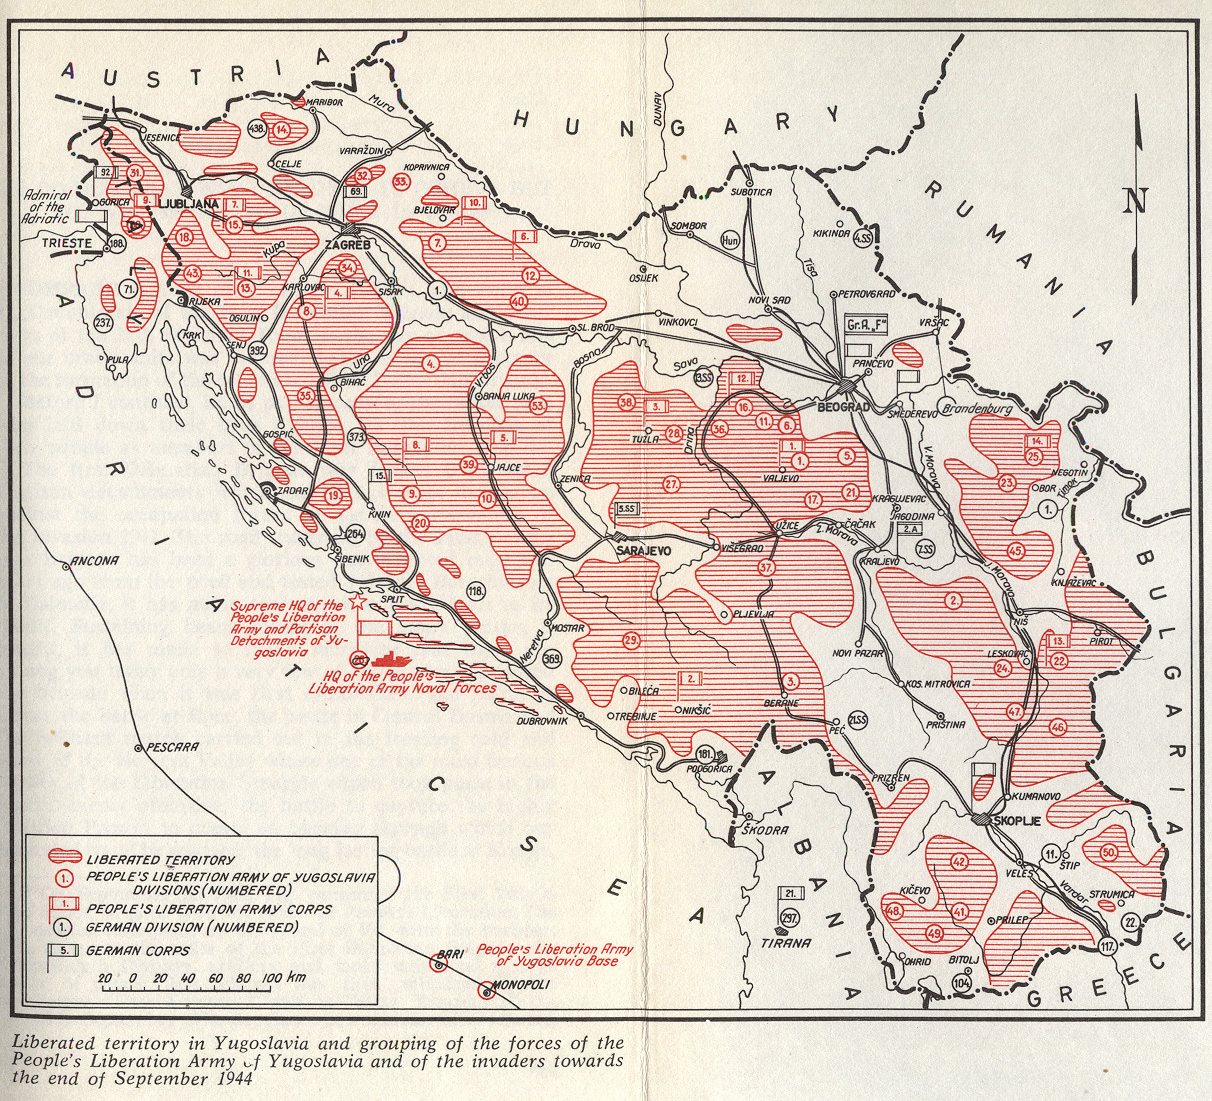 yugoslavia divided and conquered The common denominator in divide and conquer scenarios is increasing concentration of wealth and economic control in the hands of a greedy few to tito's yugoslavia was a happy medium between the soviet bloc's harsh restrictions and the west's free-wheeling capitalism with some winners and.